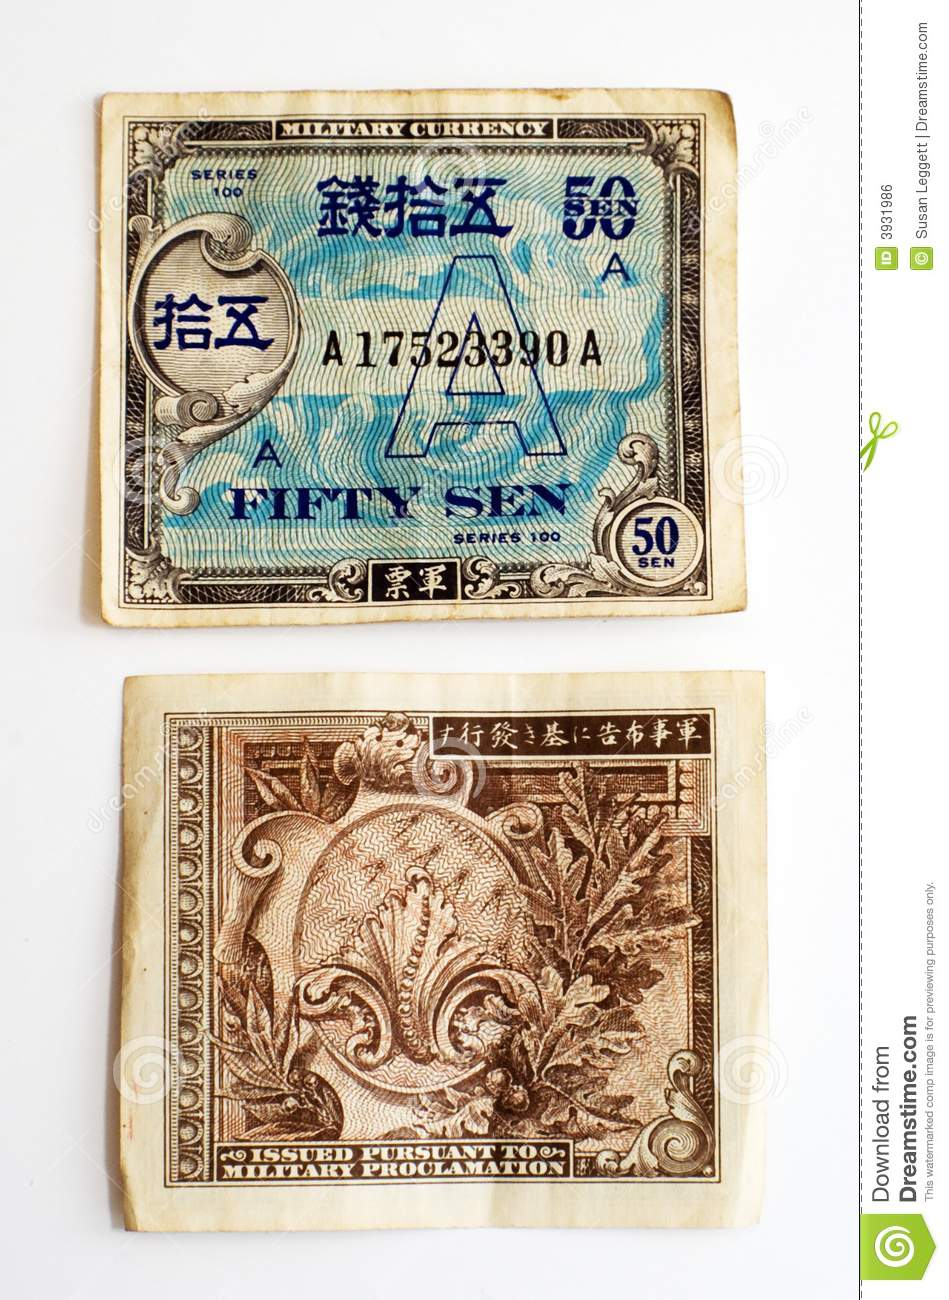 Allied Military Currency